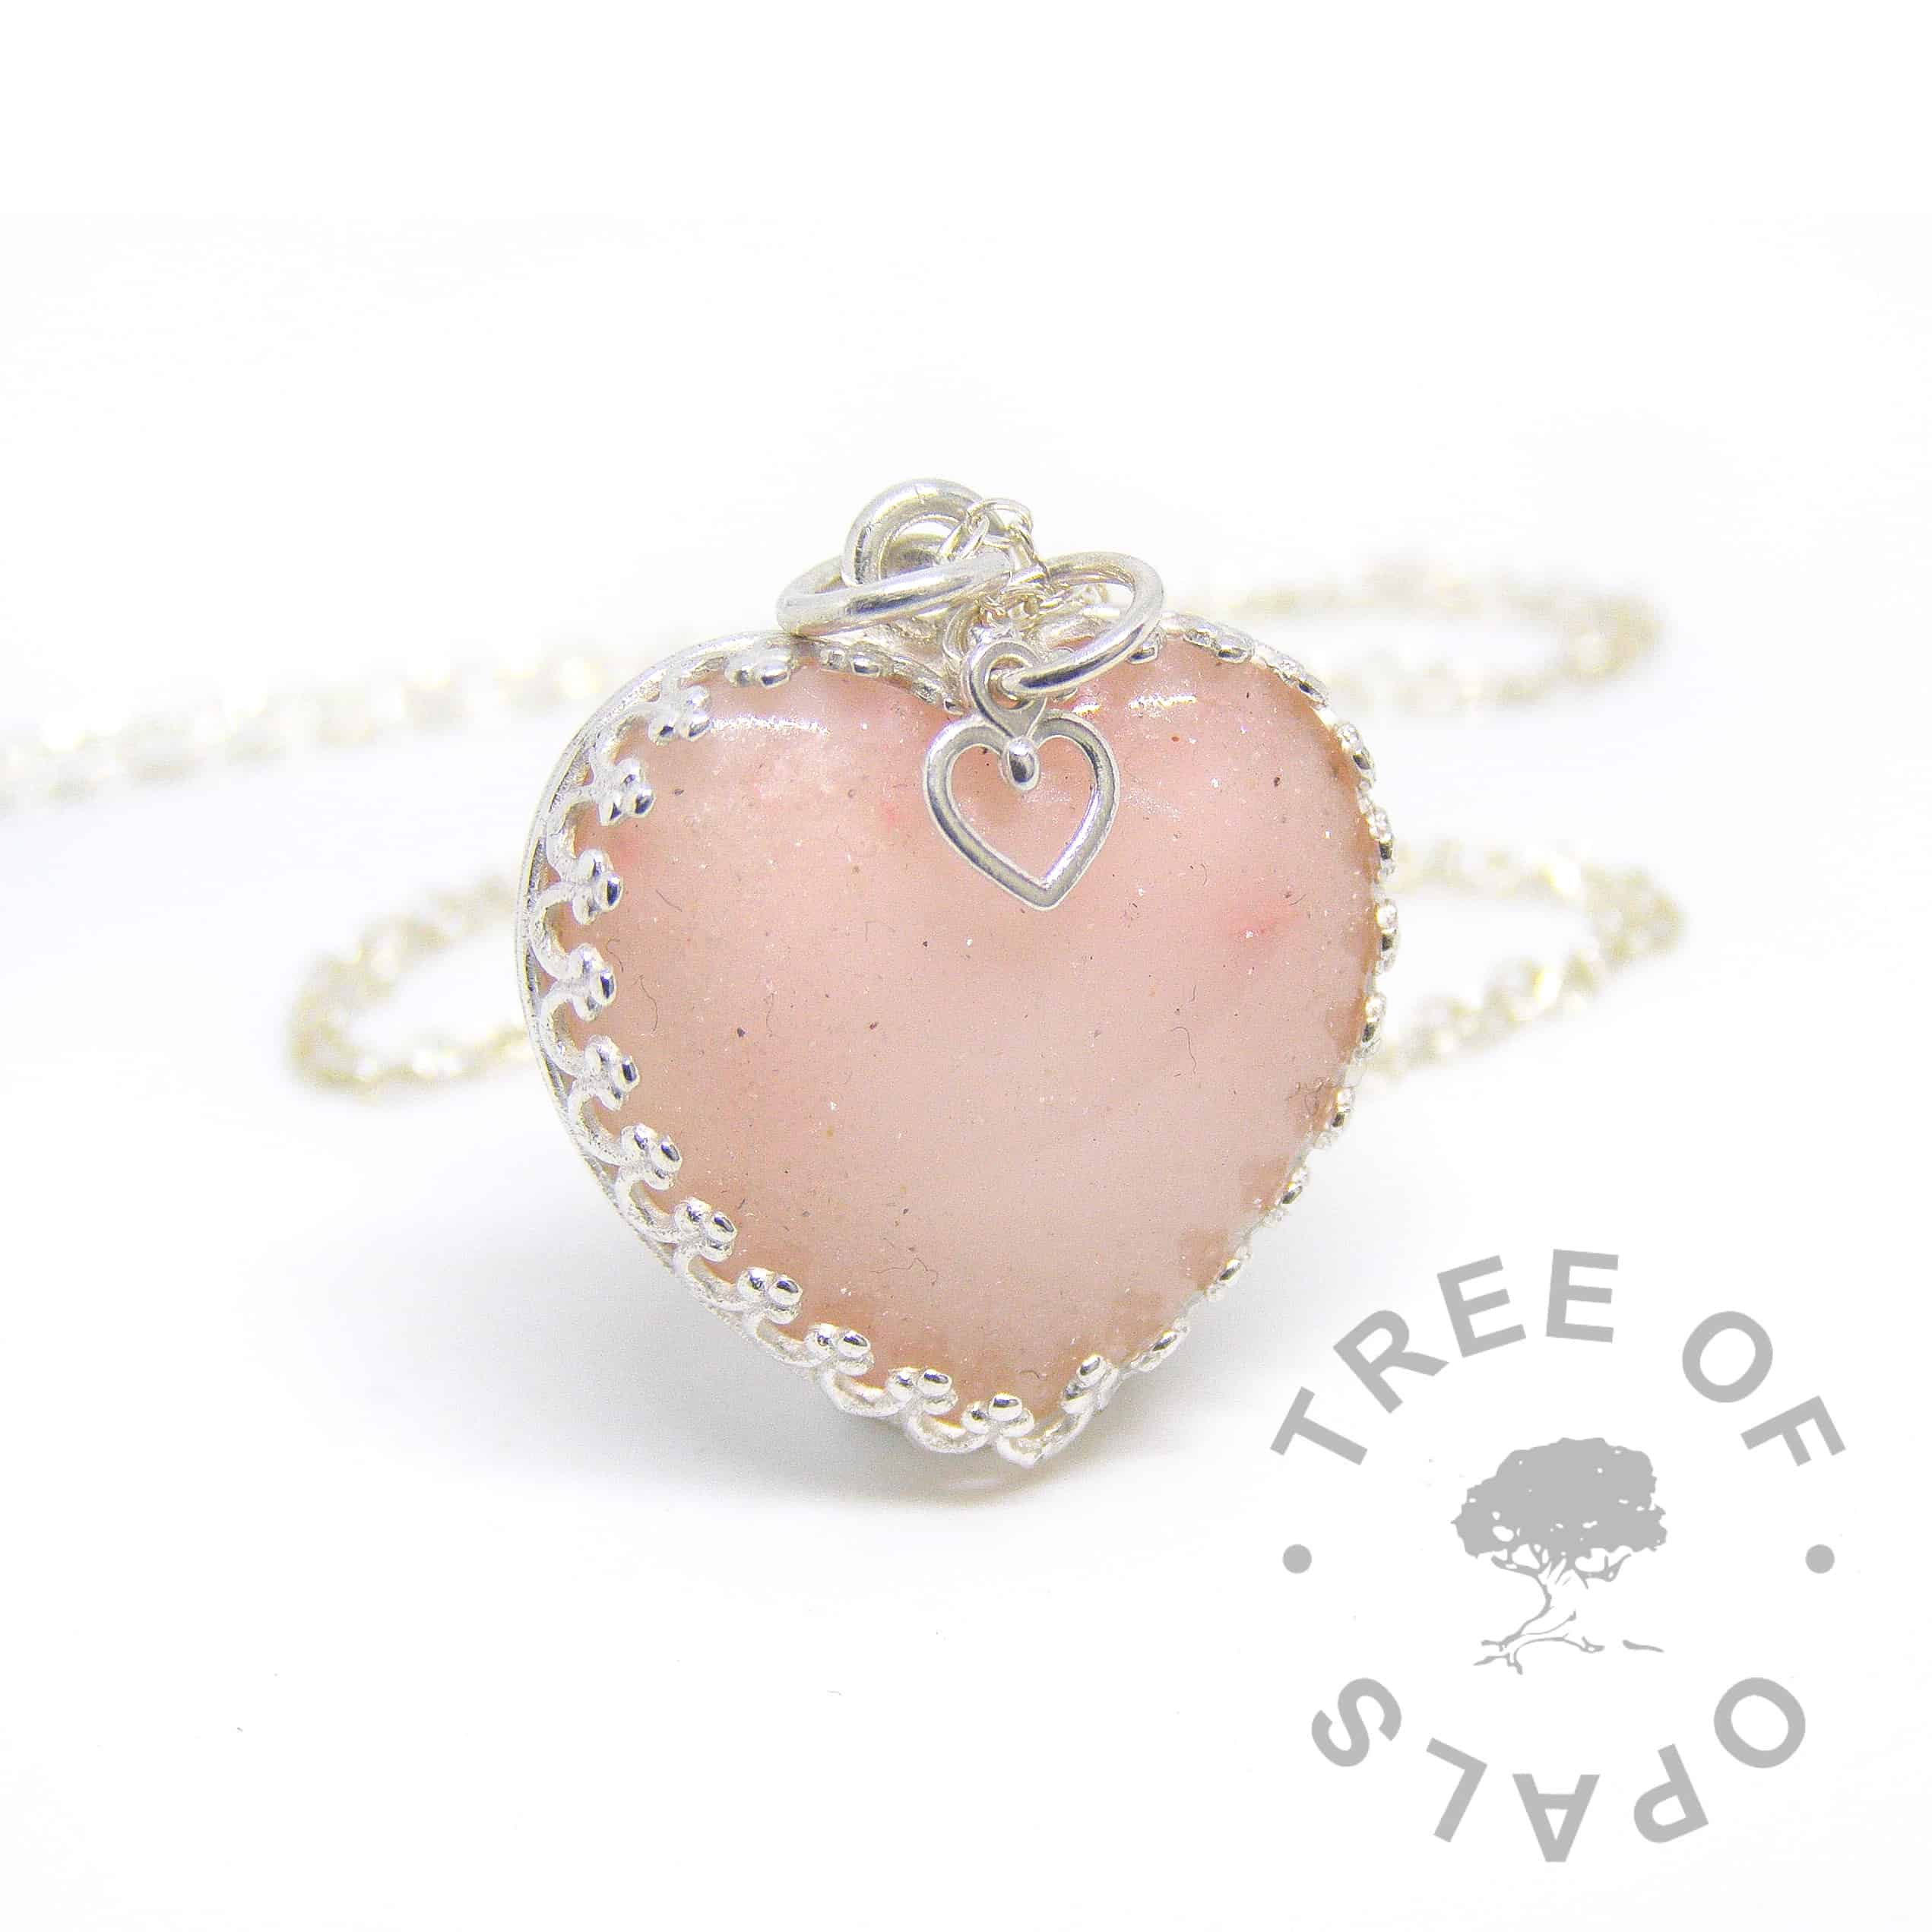 breastmilk heart necklace with 18mm medium heart cabochon made with milk powder, pink mica blend and diamond powder